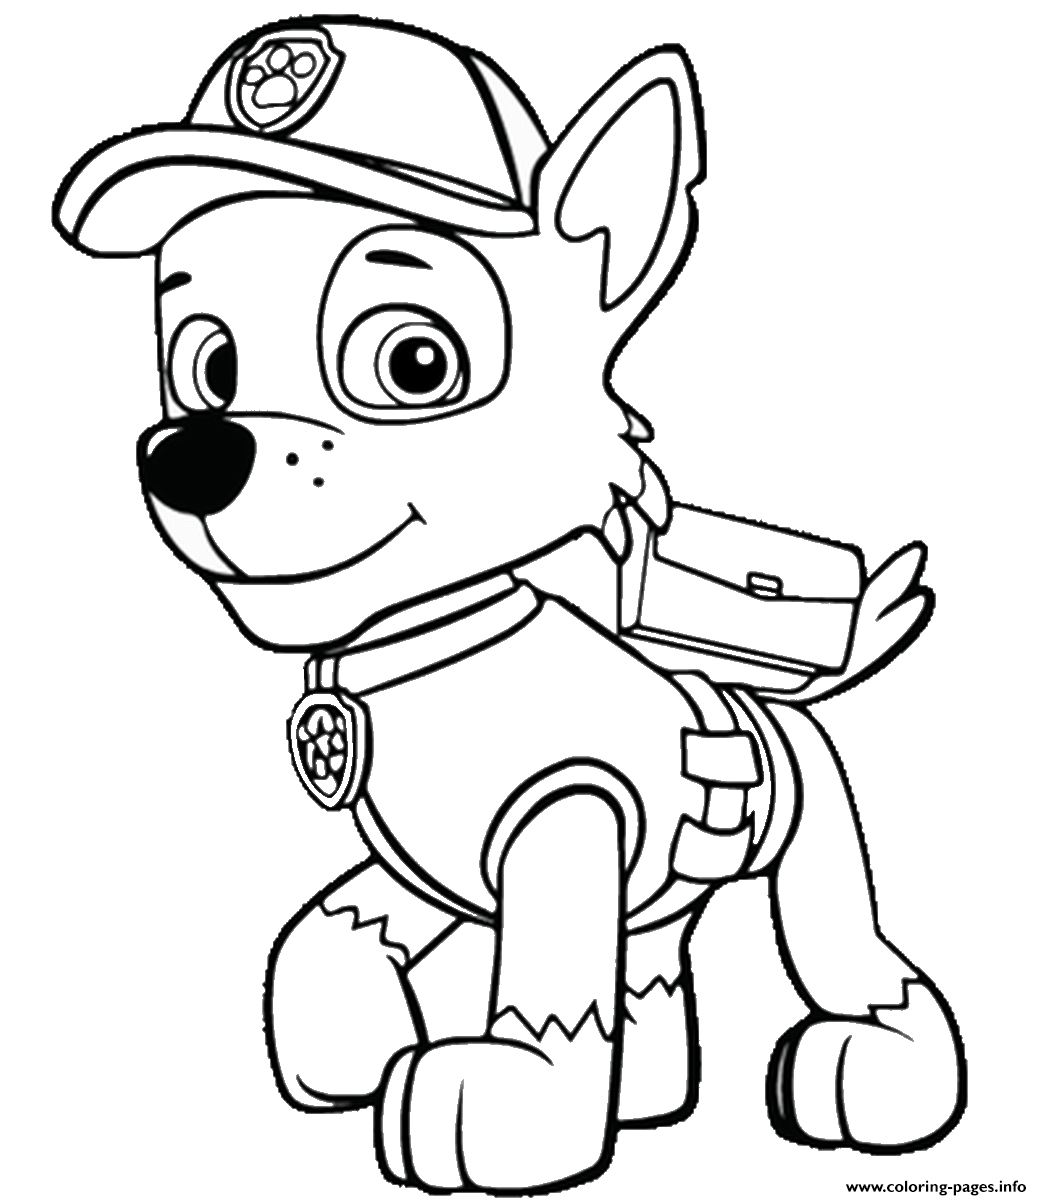 1042x1200 Free Paw Patrol Coloring Pages Happiness Is Homemade Coloring